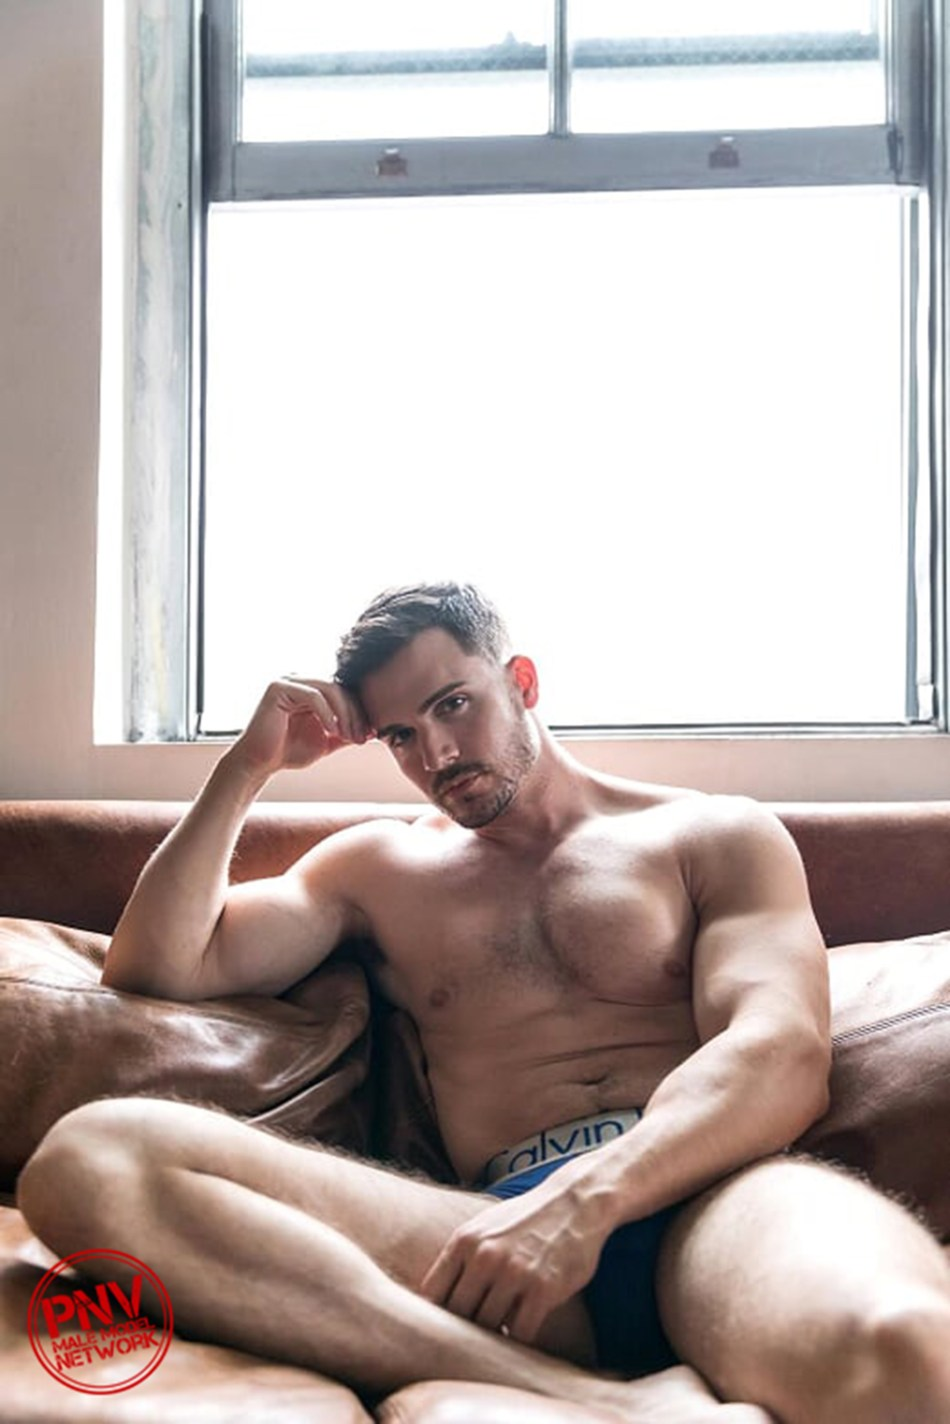 """""""Ain't No Stoppin'"""" – Model Philip Fusco by LensAction - Exclusive PnV"""